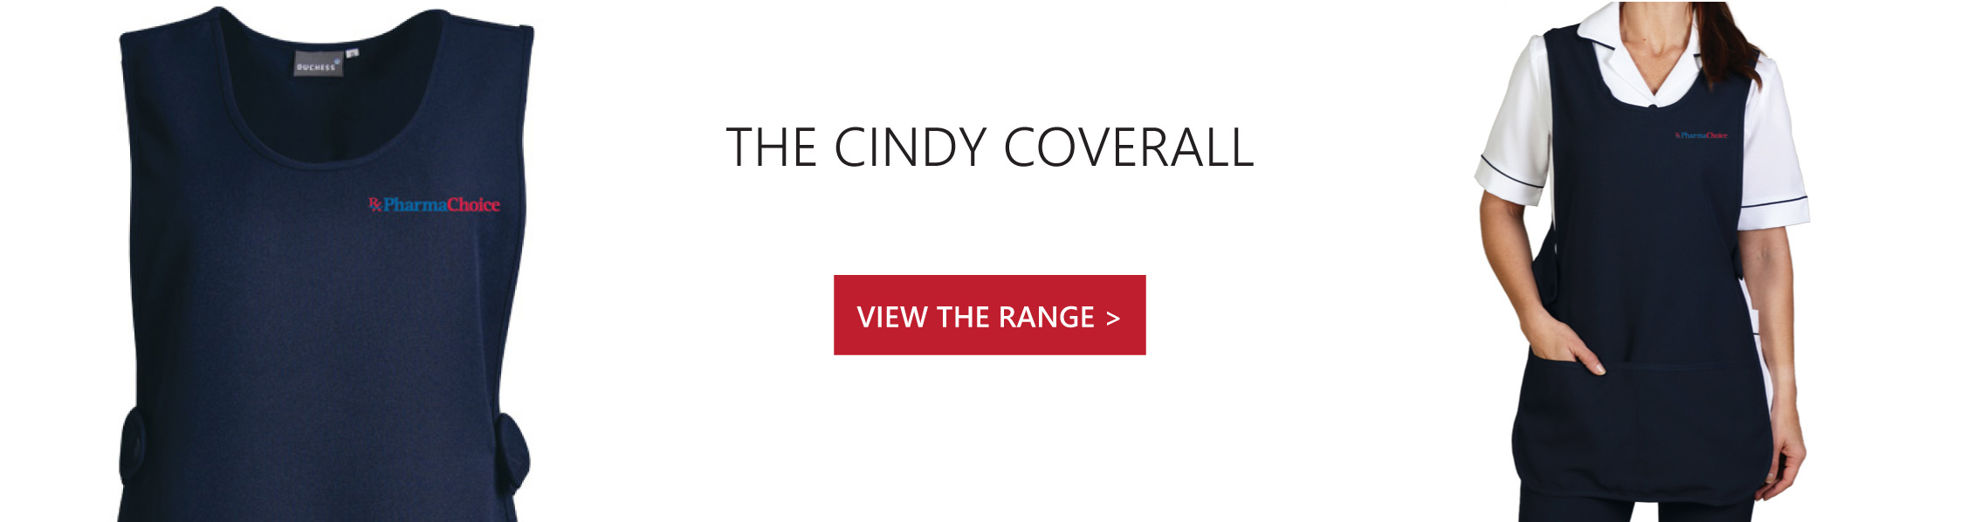 THE CINDY COVERALL